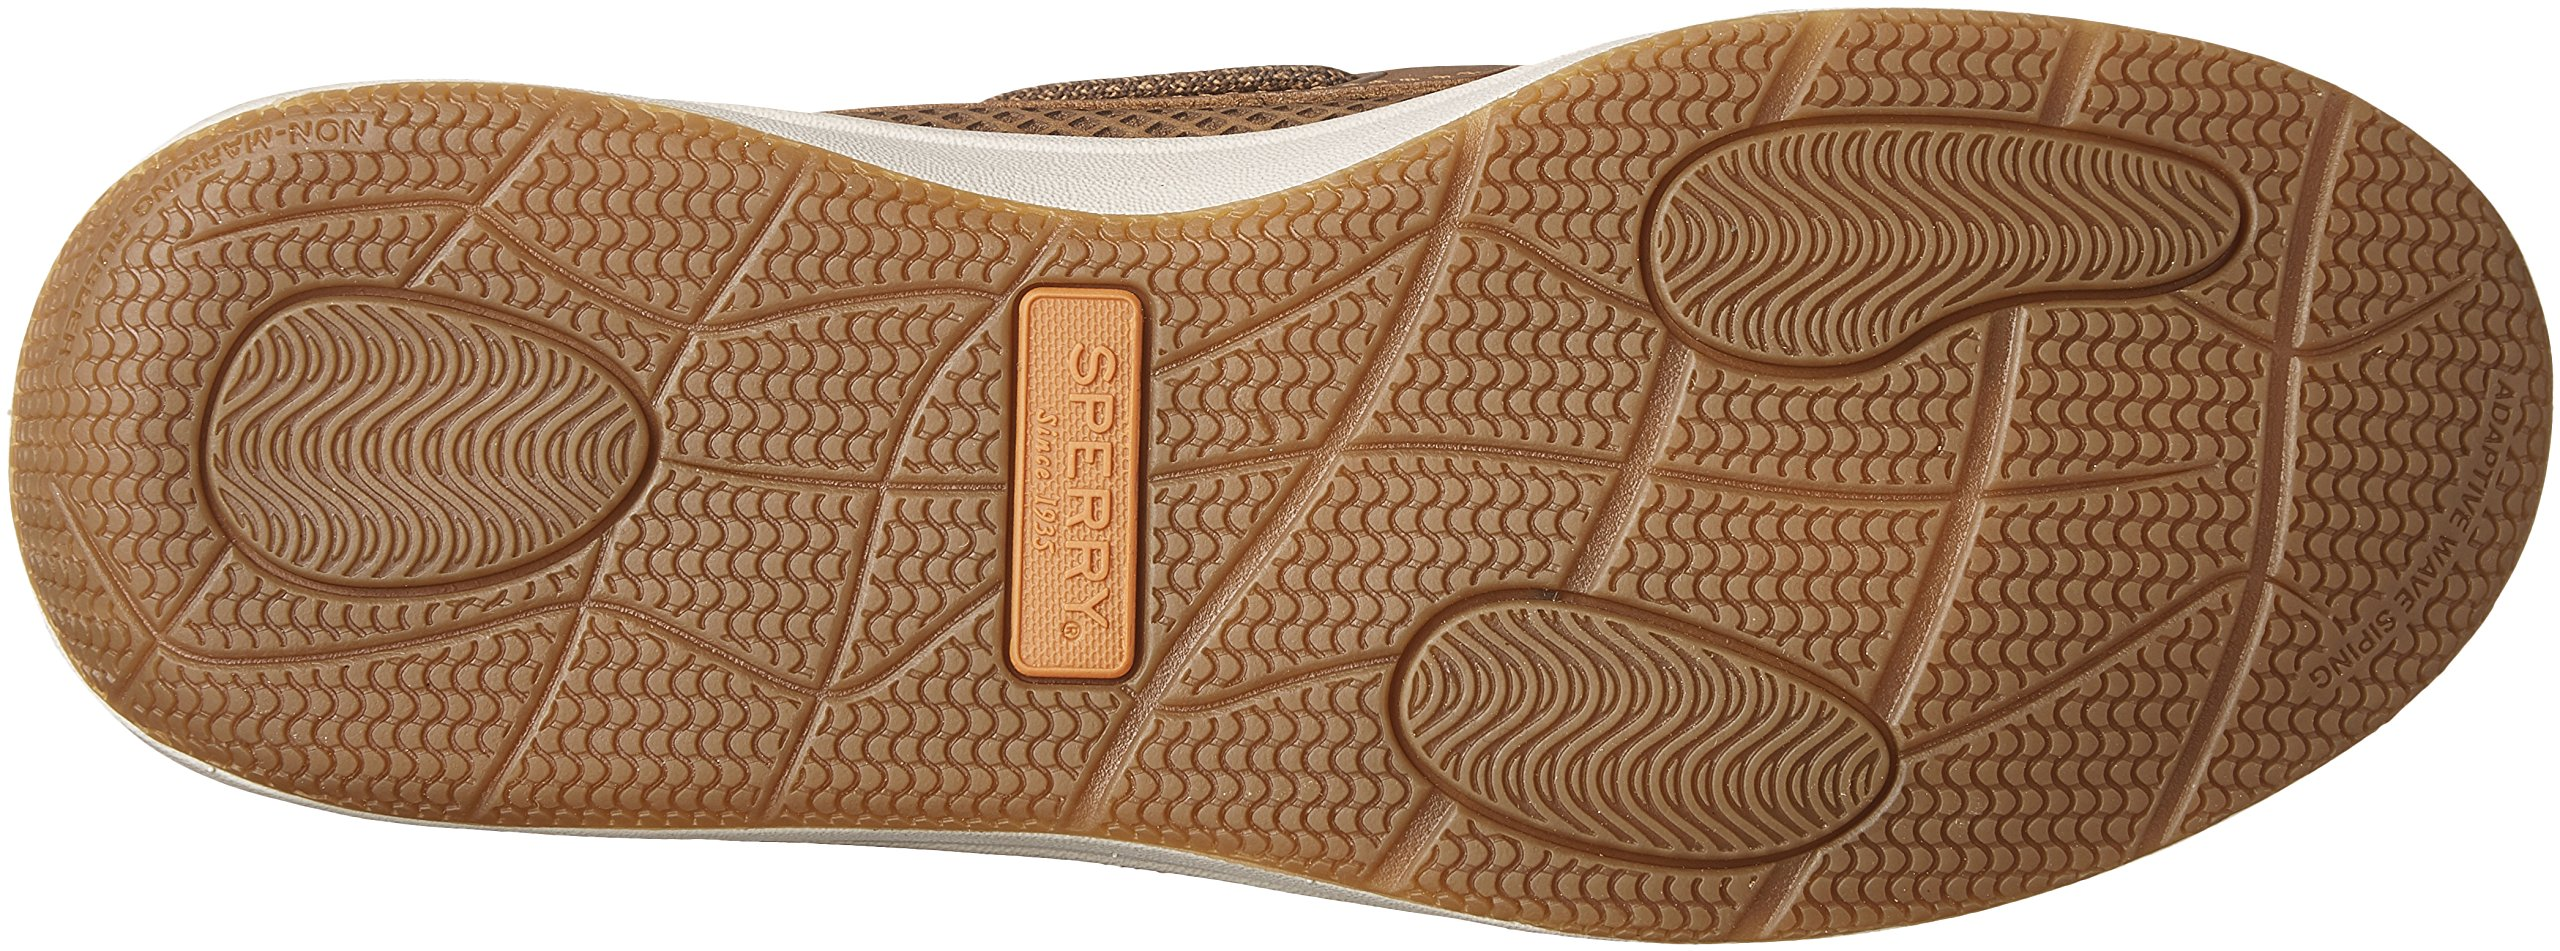 Sperry Top-Sider Men's Gamefish Slip On Boat Shoe, Dark Tan, 10.5 M US by Sperry Top-Sider (Image #3)